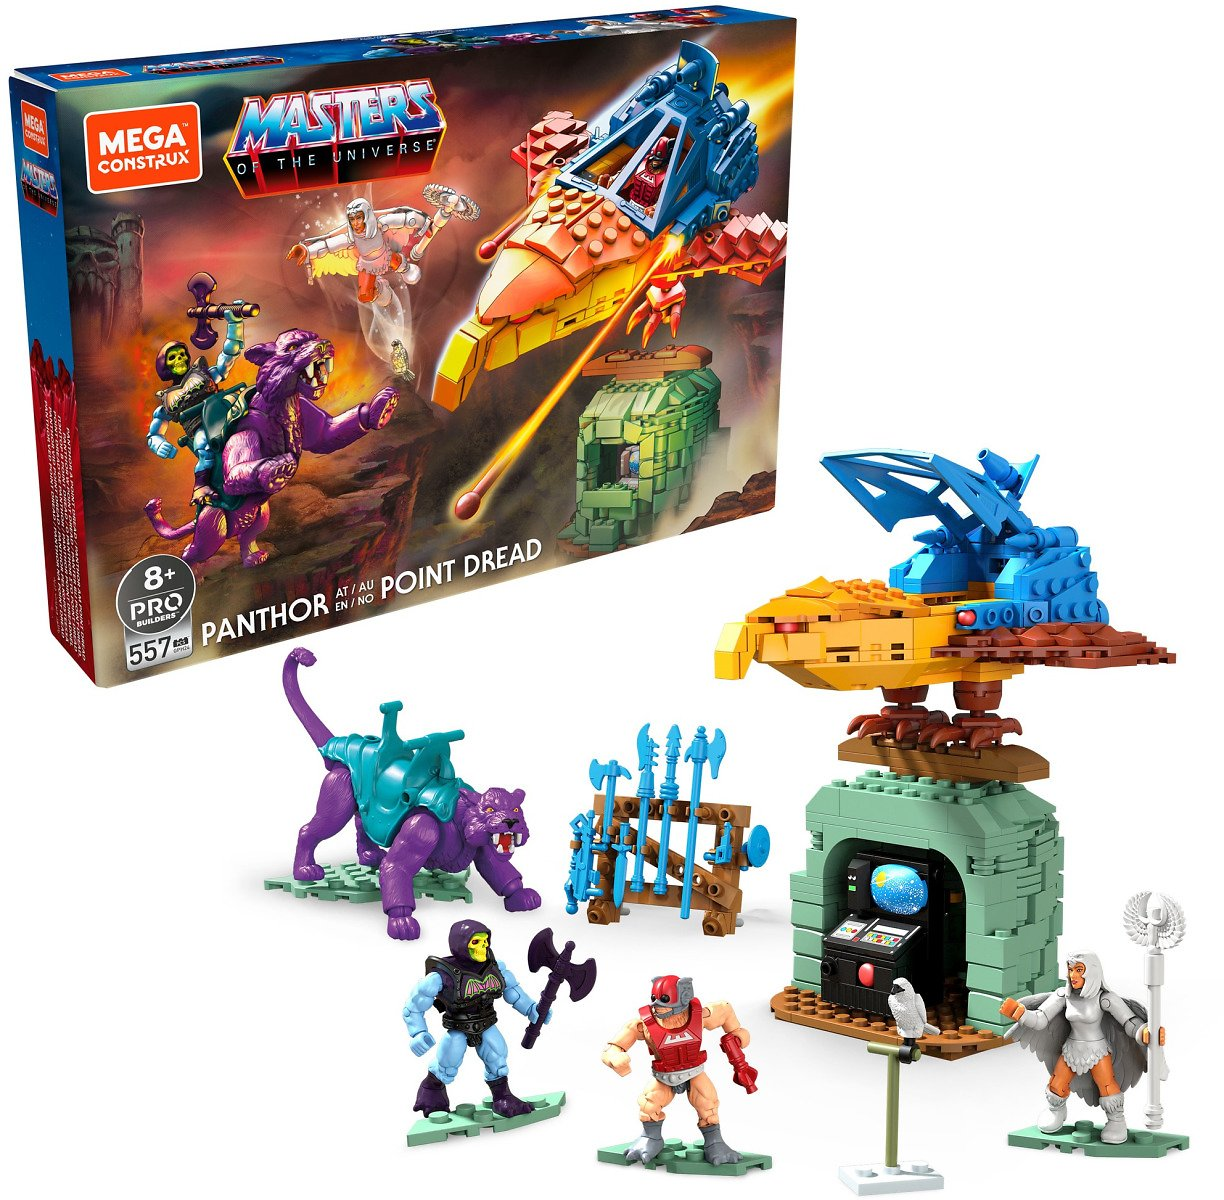 Mega Construx Masters of The Universe Panthor At Point Dread Construction Set with Micro Action Figures, Building Toys for Kids